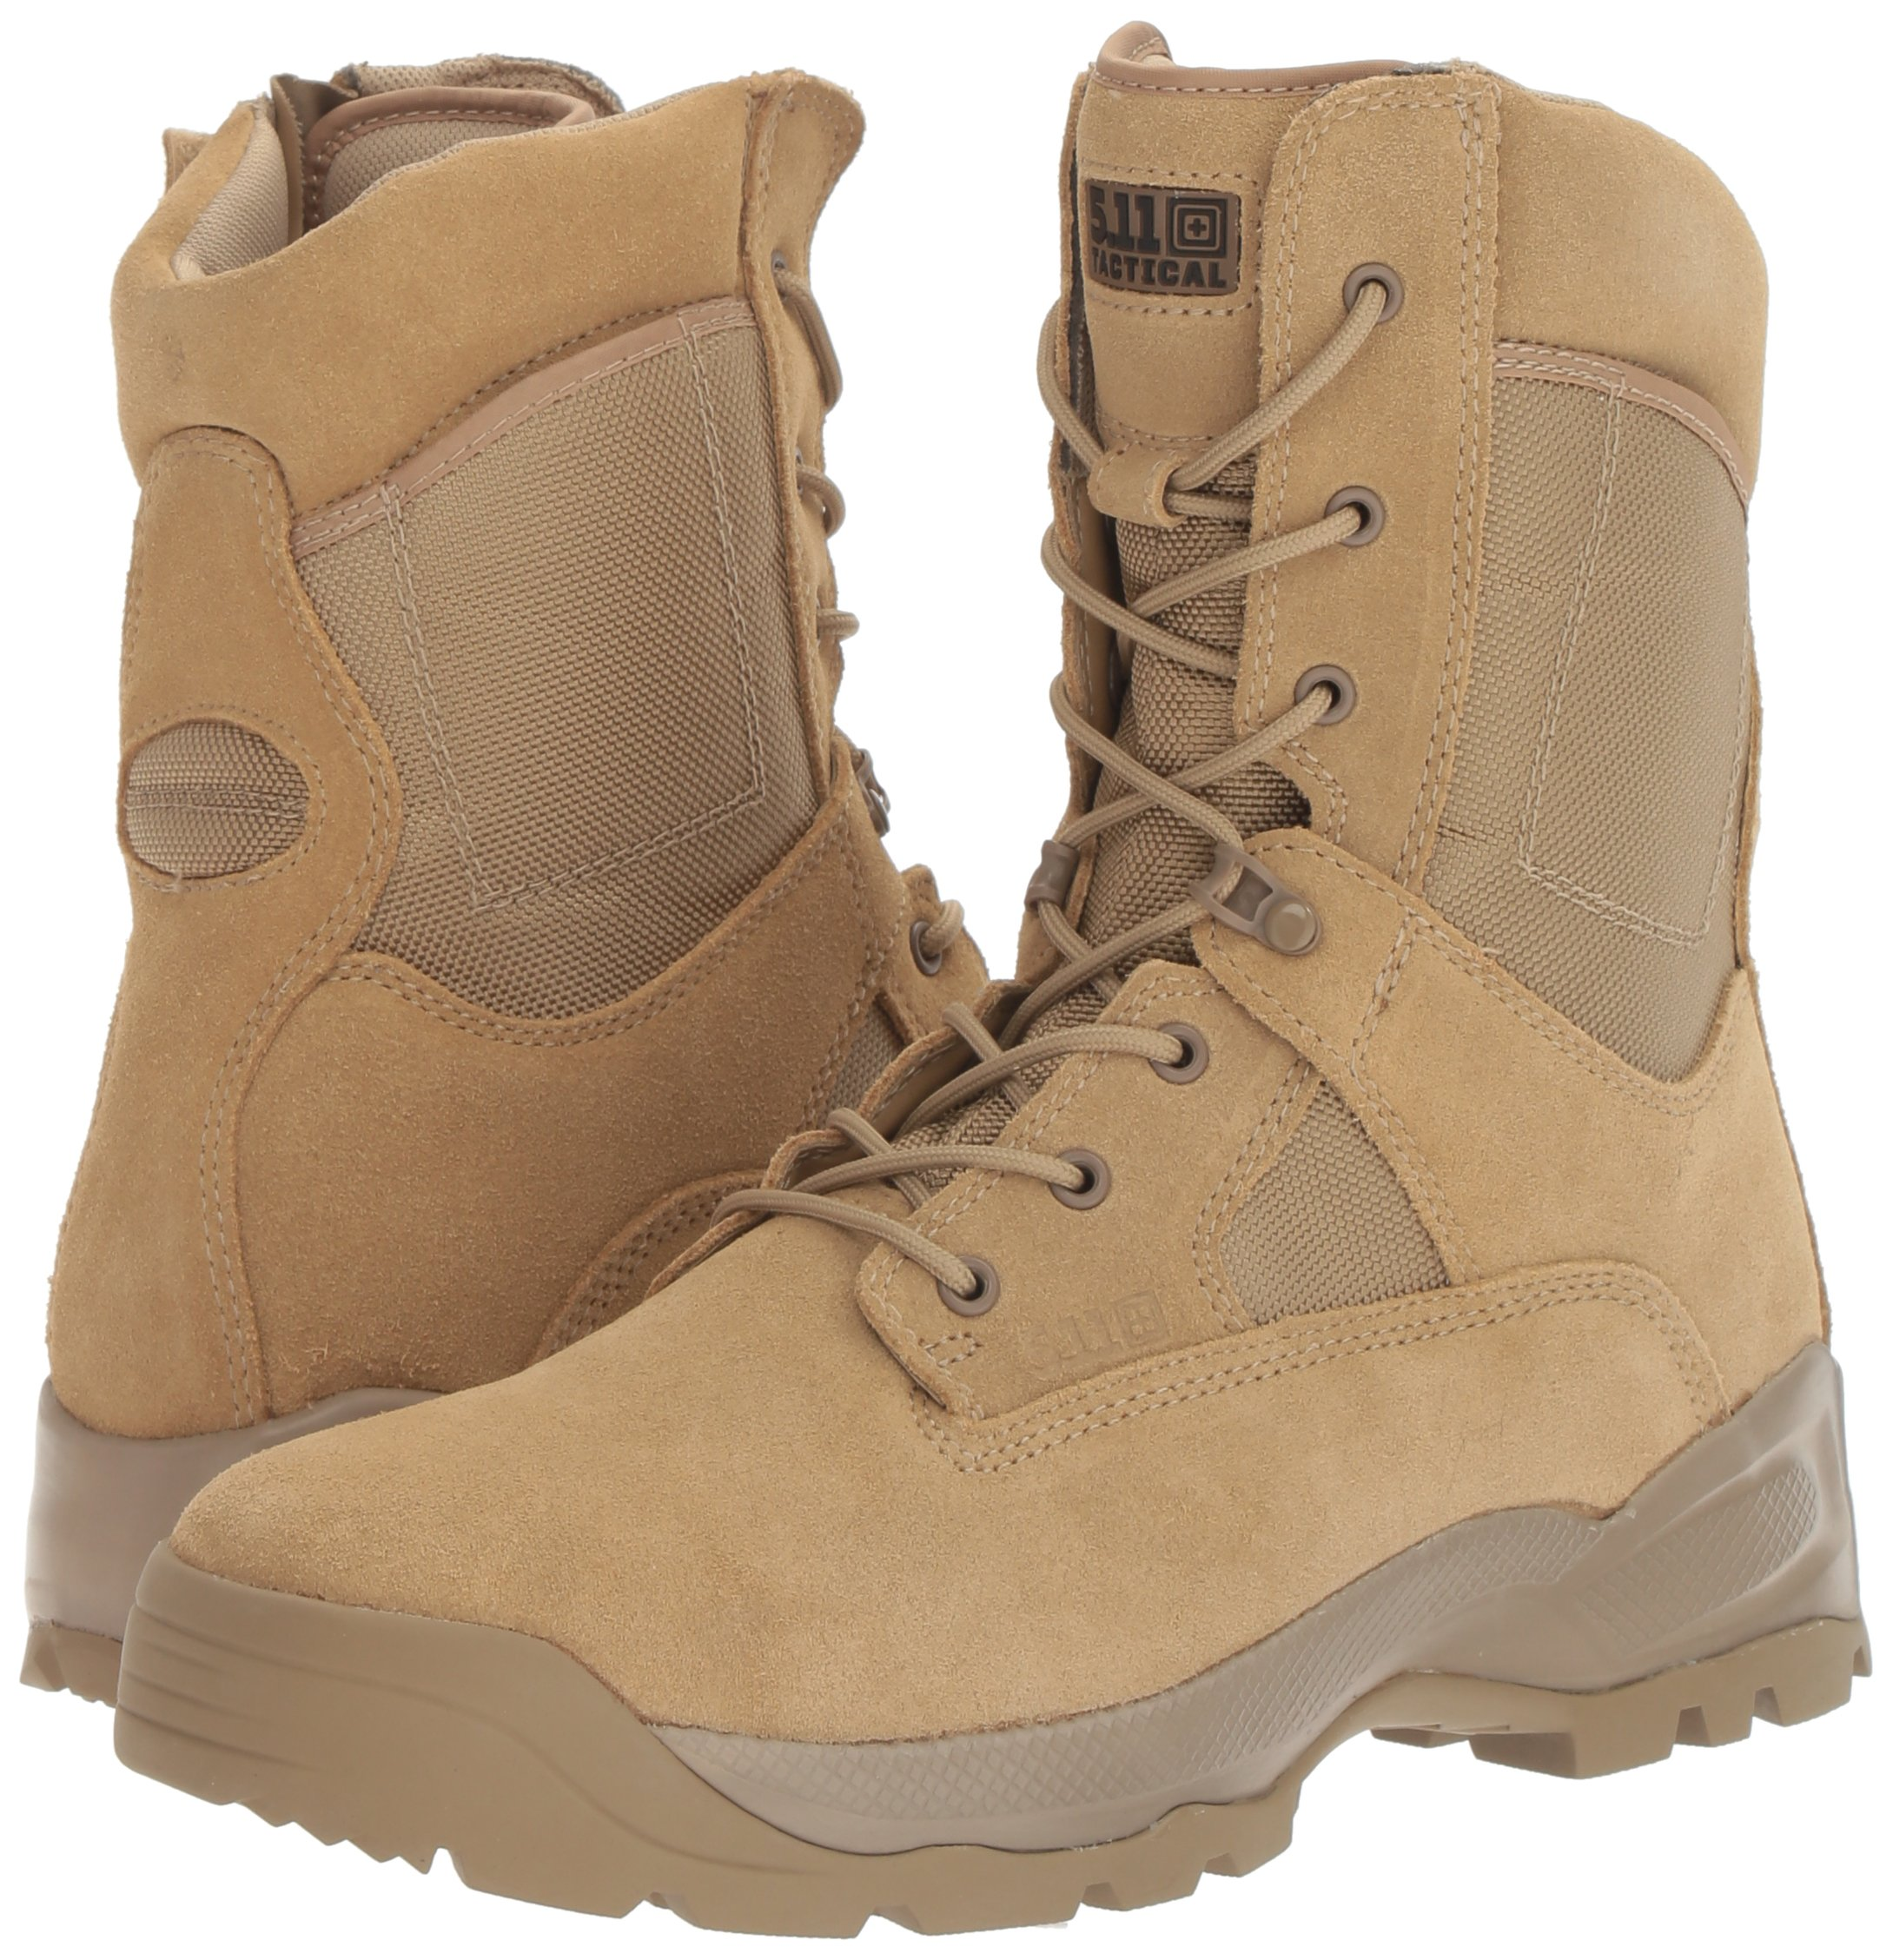 5.11 Atac 8In Boot-U, Coyote Brown, 11 D(M) US by 5.11 (Image #6)